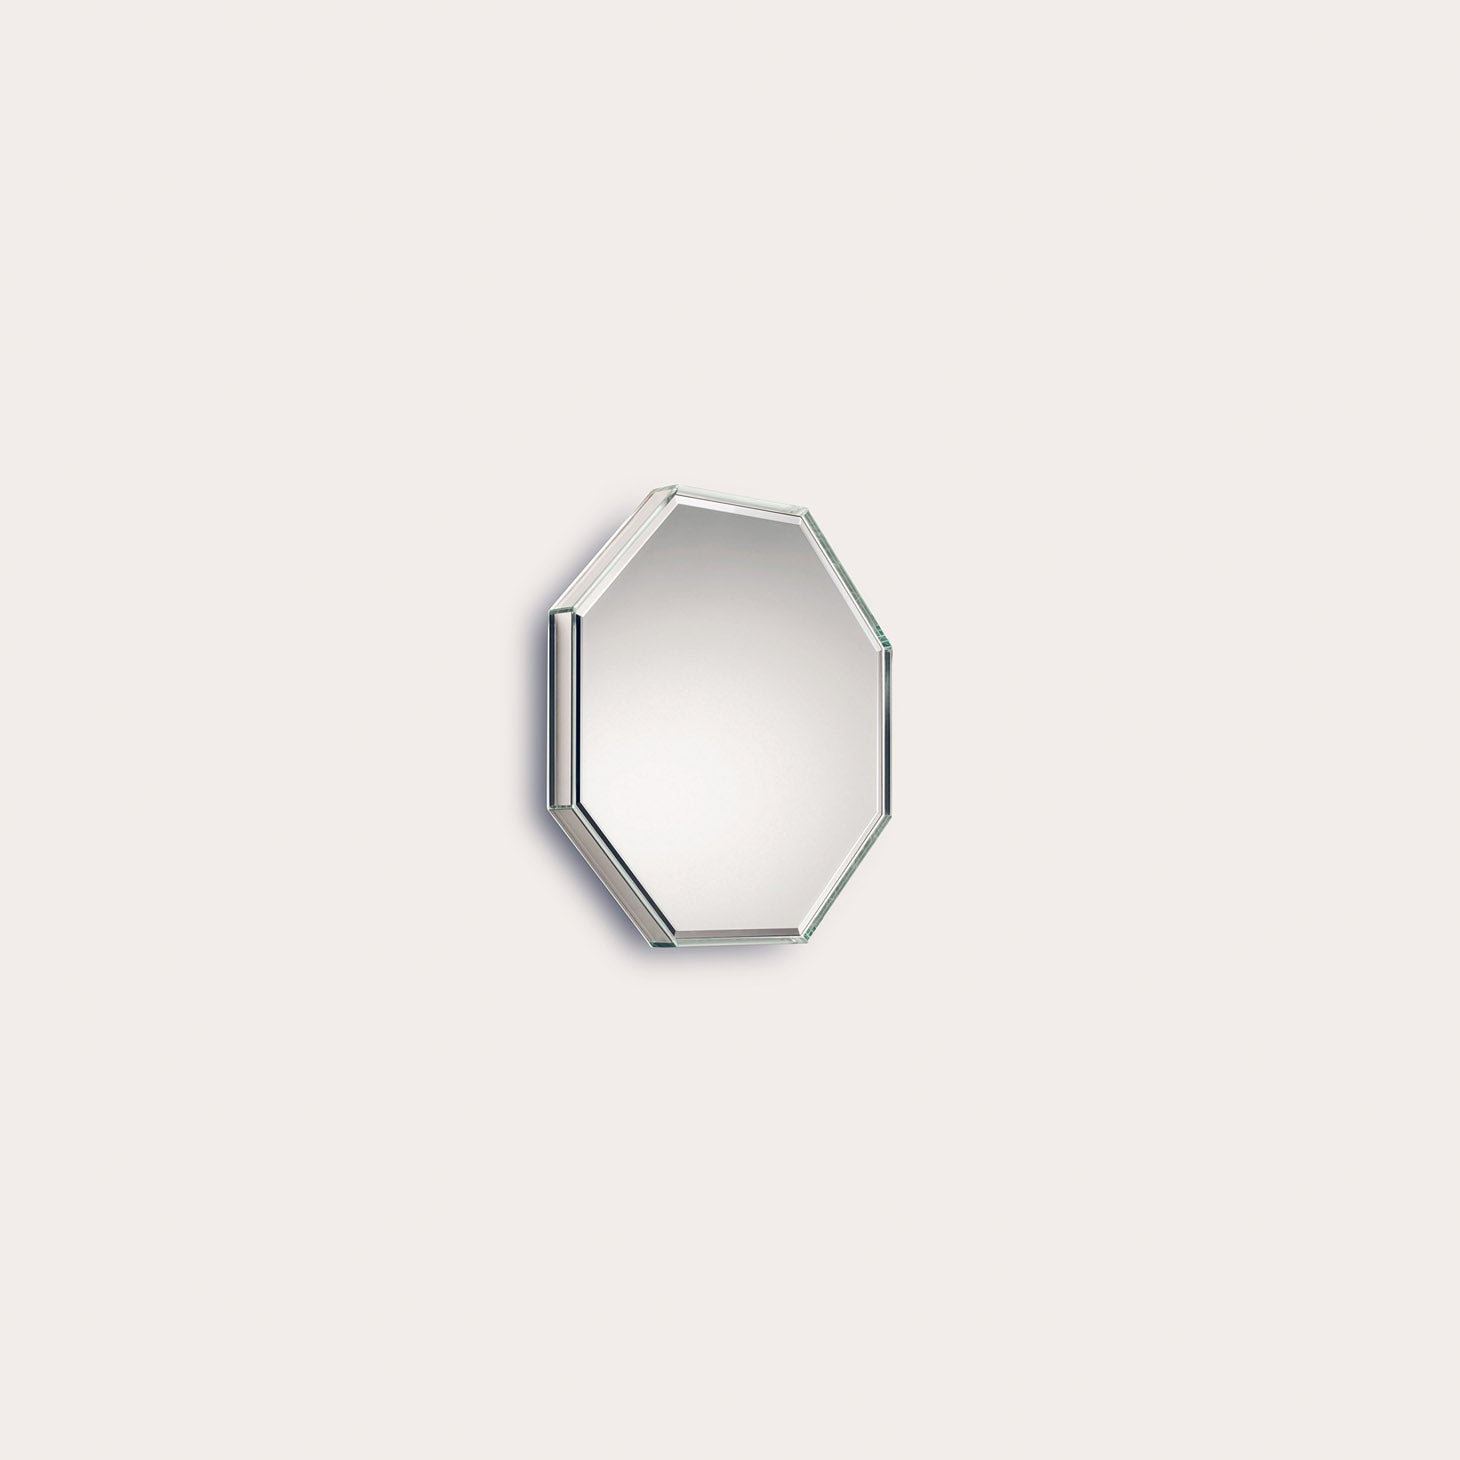 Prism Mirror Accessories Piero Lissoni Designer Furniture Sku: 288-100-10067